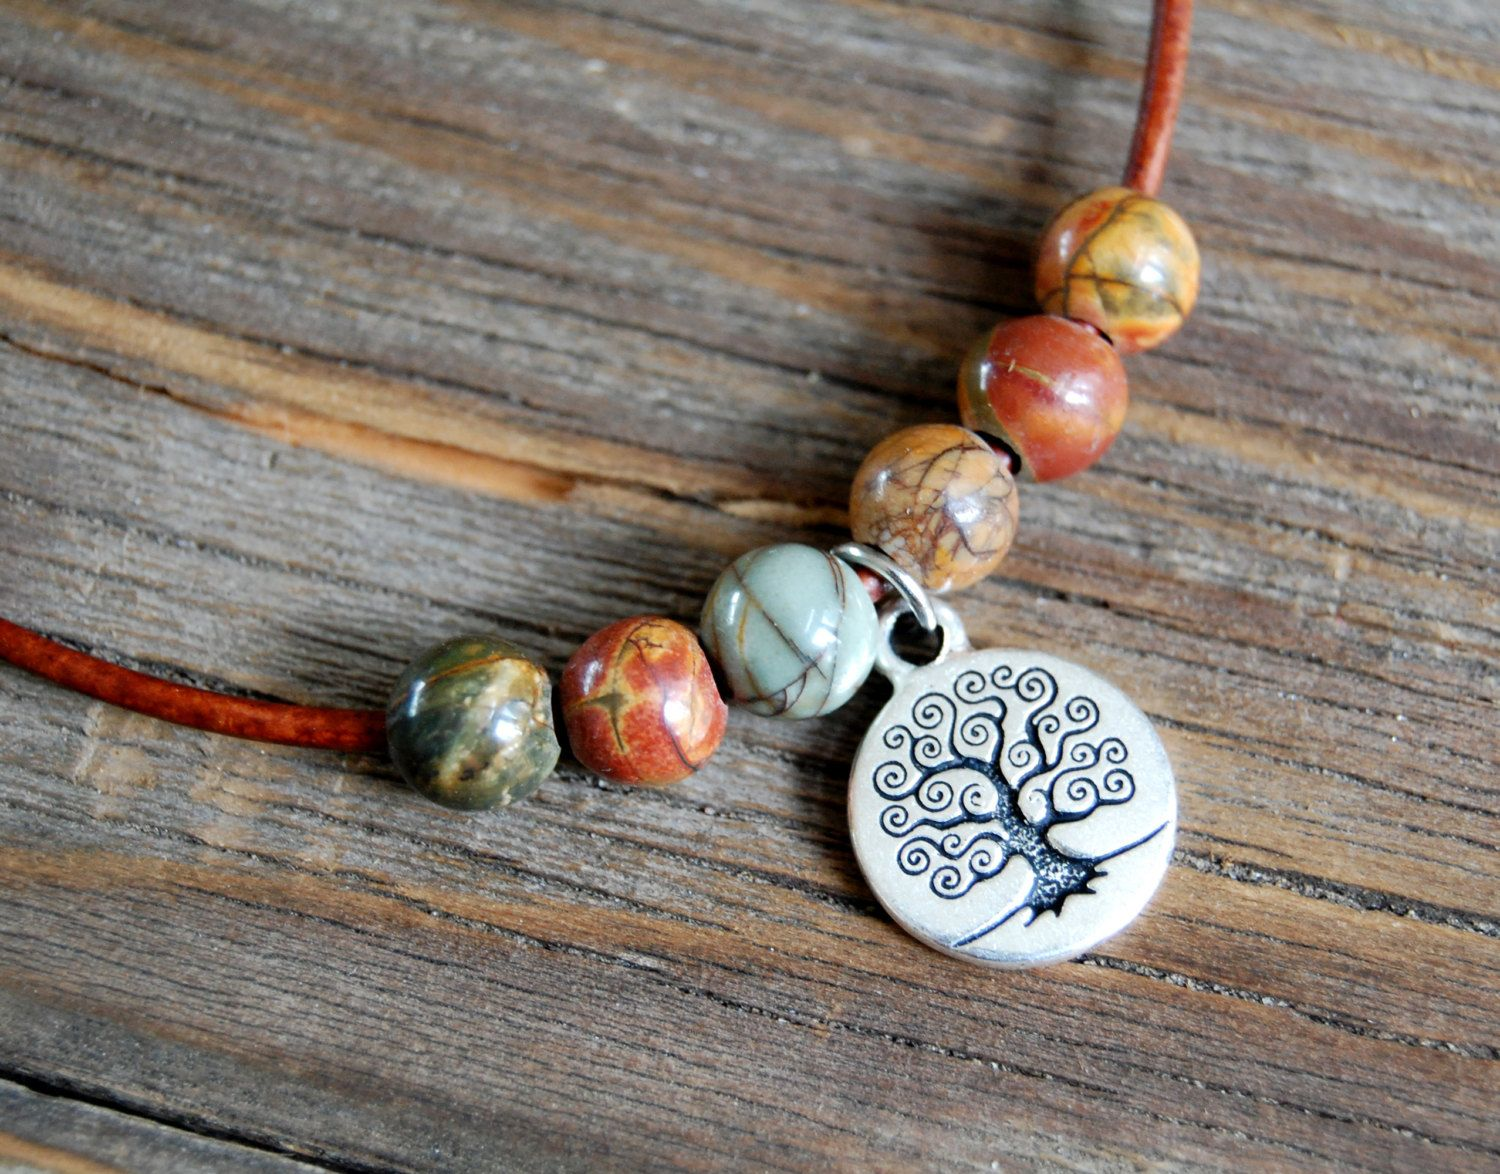 Leather Tree of Life Necklace - Red Creek Jasper - Tree of Life Charm - Gemstone Necklace - Reddish Brown Leather - Tree of Life Jewelry by BoulderBeads on Etsy